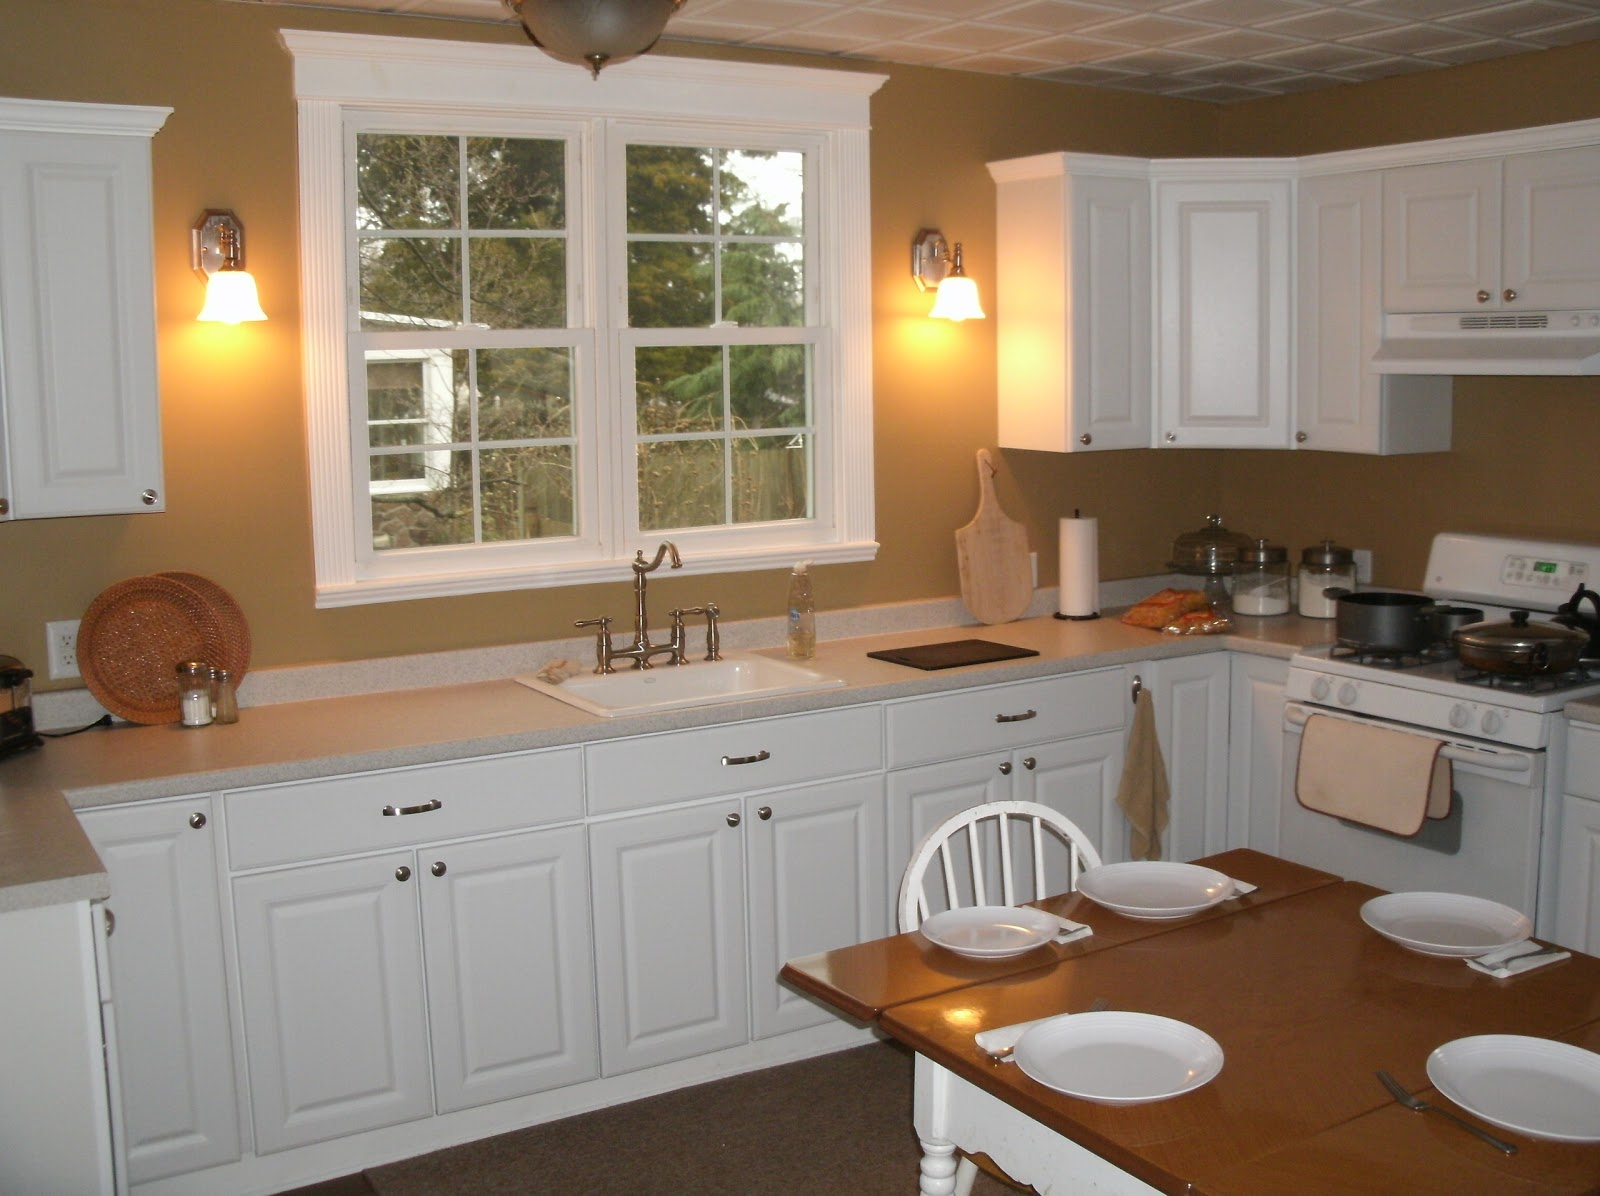 Home remodeling and improvements tips and how to 39 s for Kitchen remodel pictures